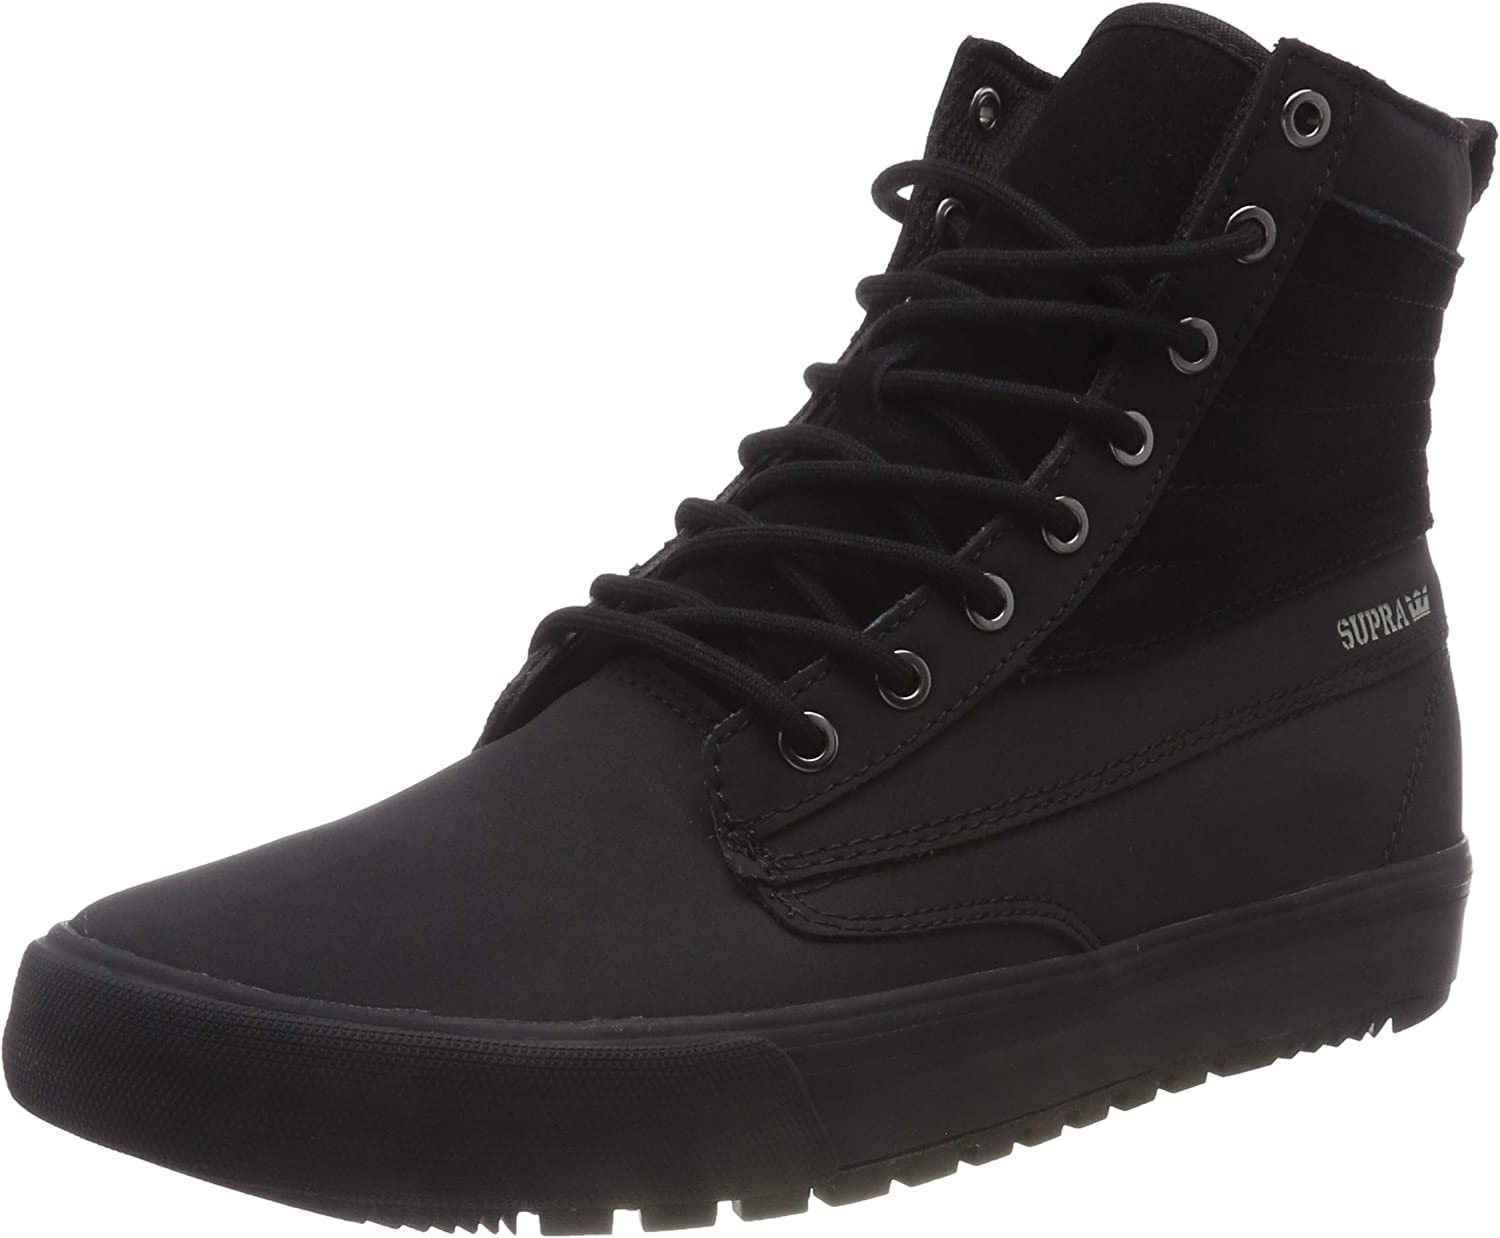 Supra  Graham CW shoes (Black Black) Men's High-Top Leather Winter Snow Boot